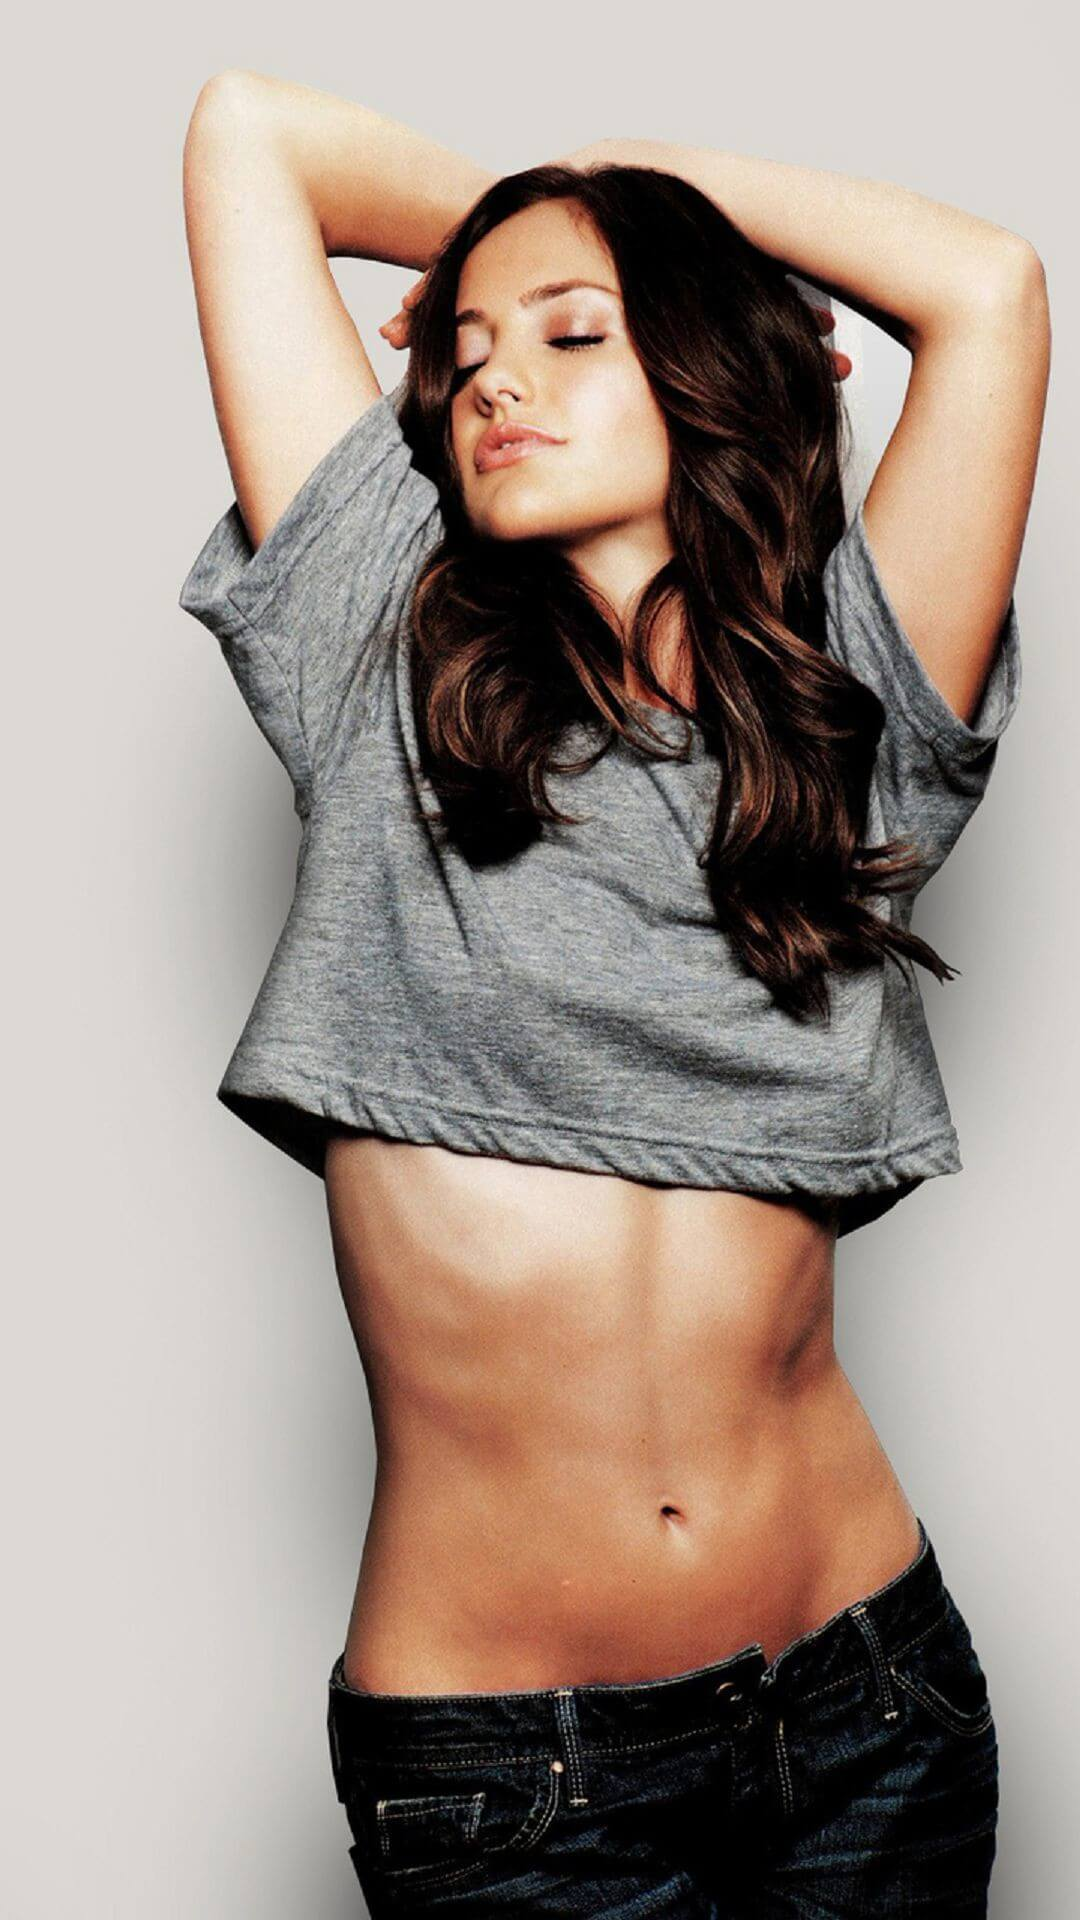 minka kelly sexy actrice iphone 7 plus hd wallpaper